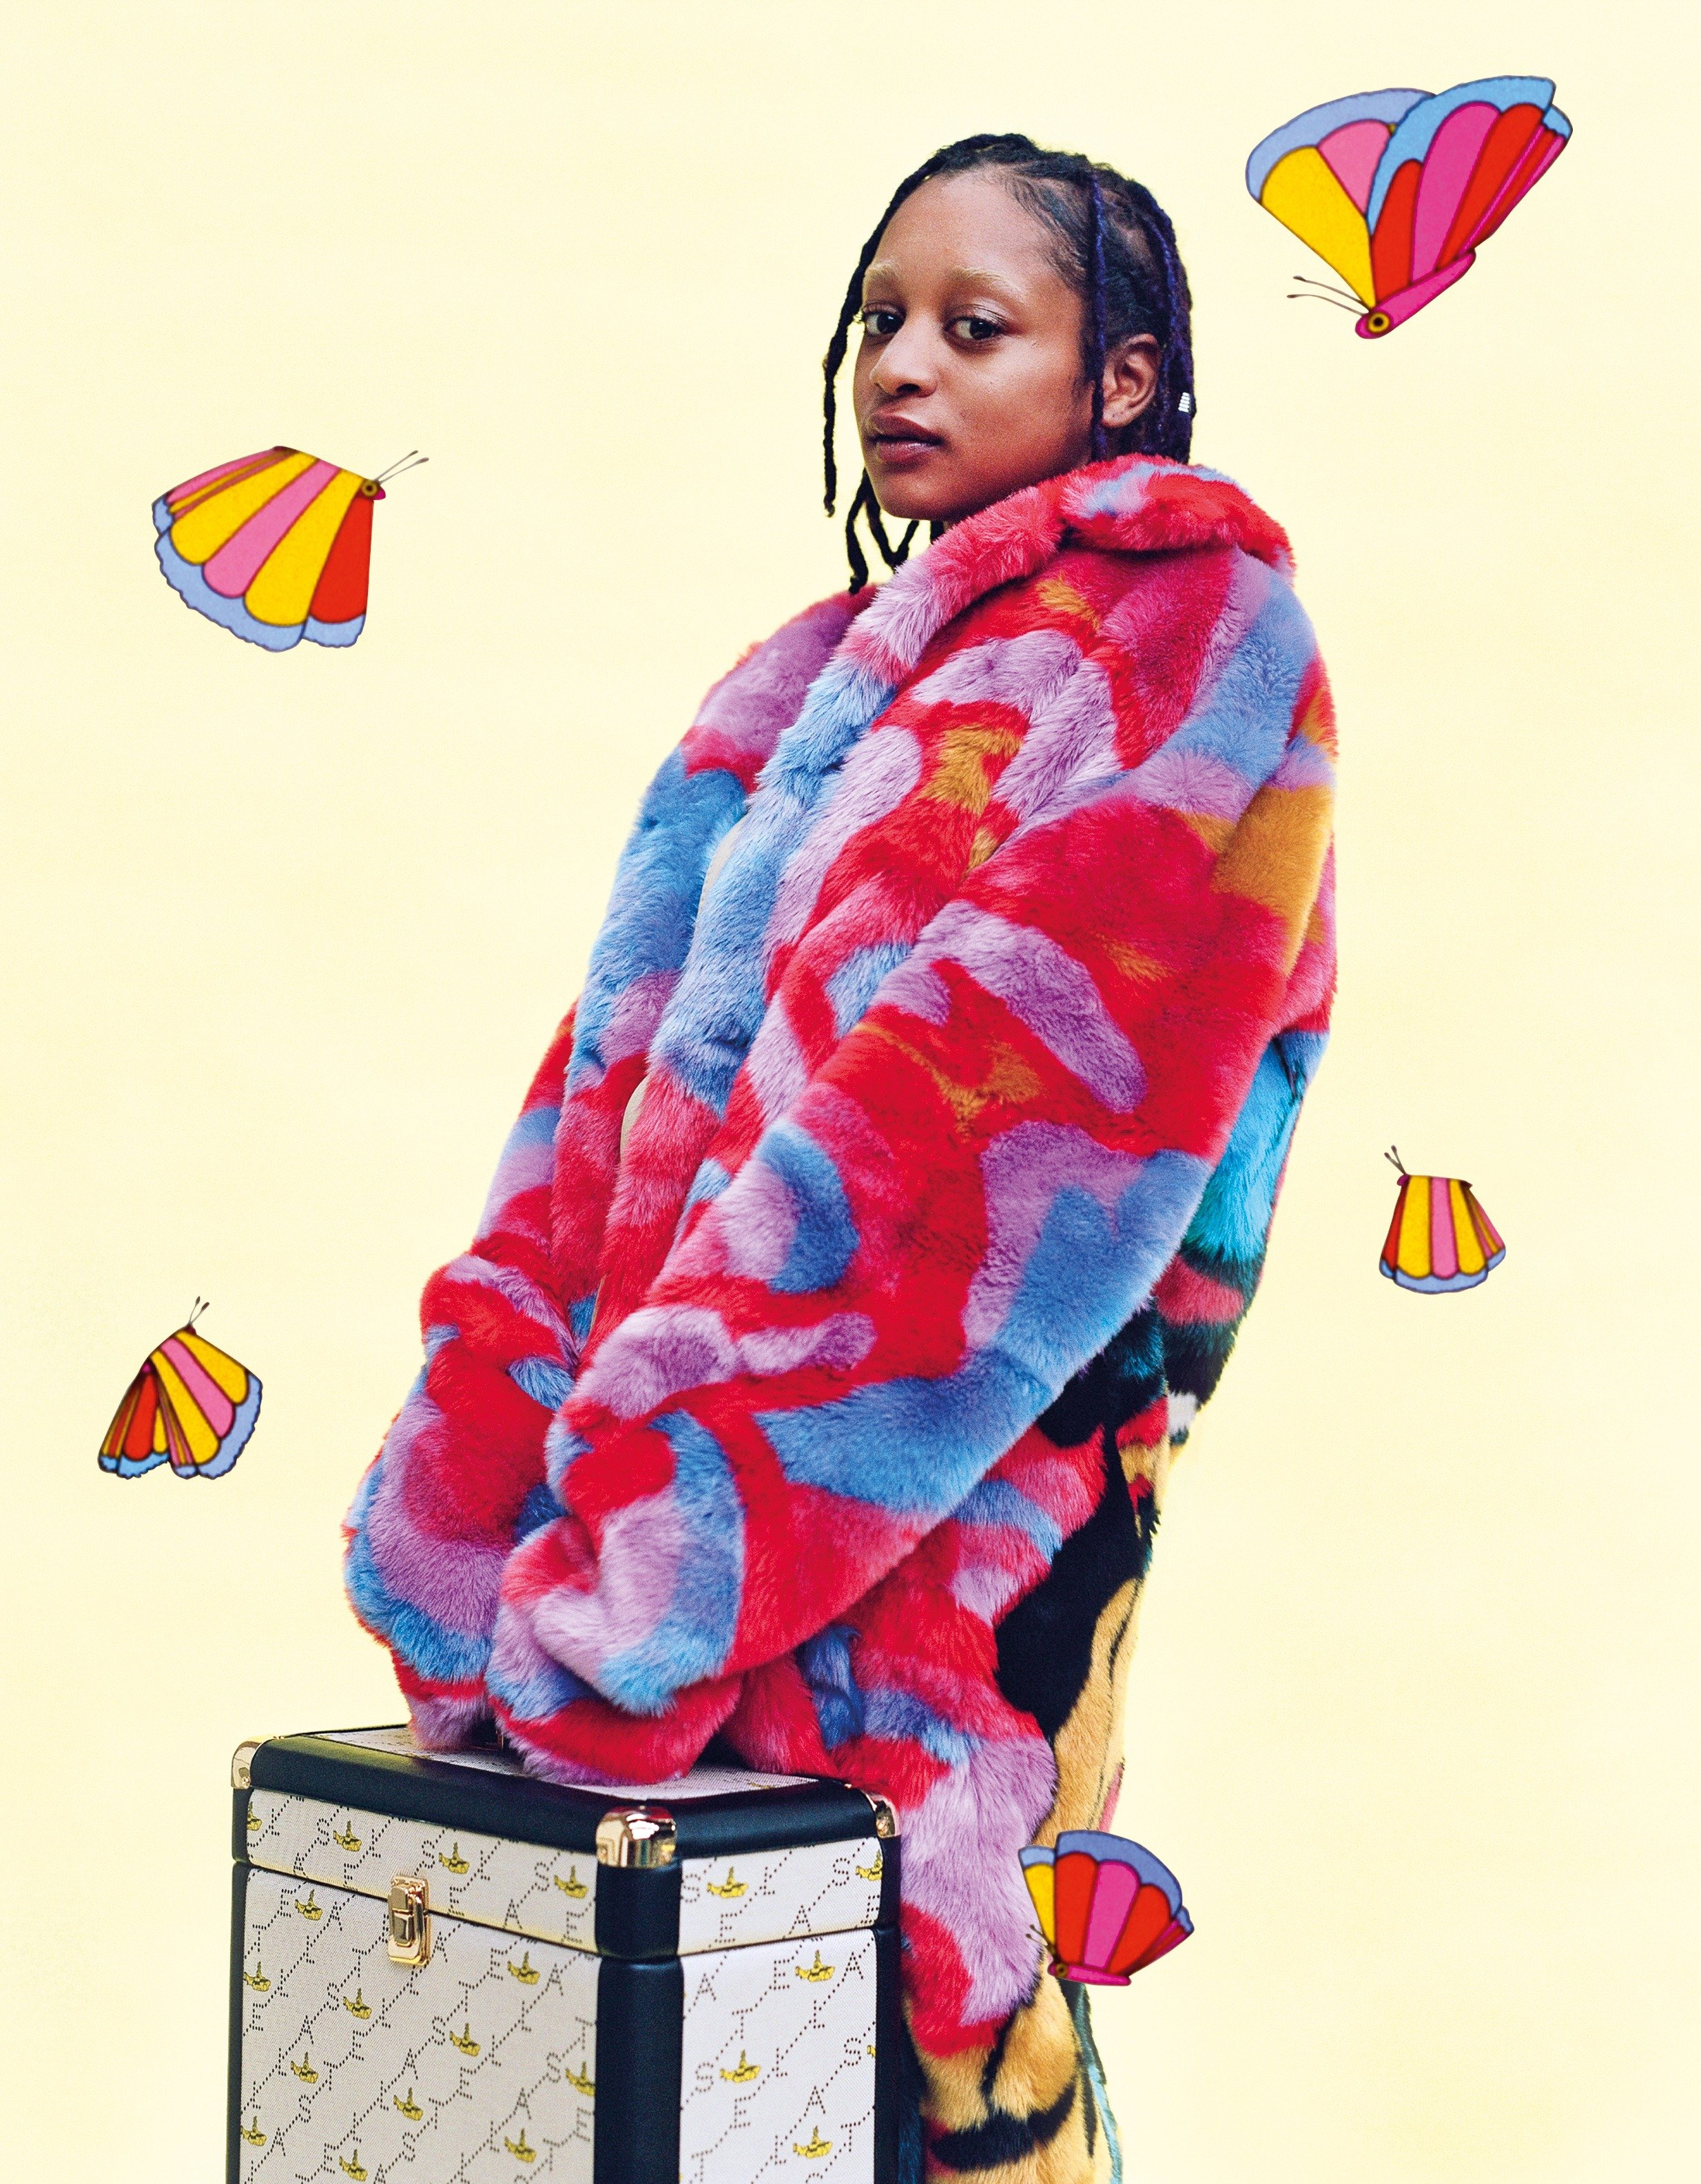 Fur Free Fur 'All Together Now' coat as seen on musical talent KEYAH/BLU from South London.